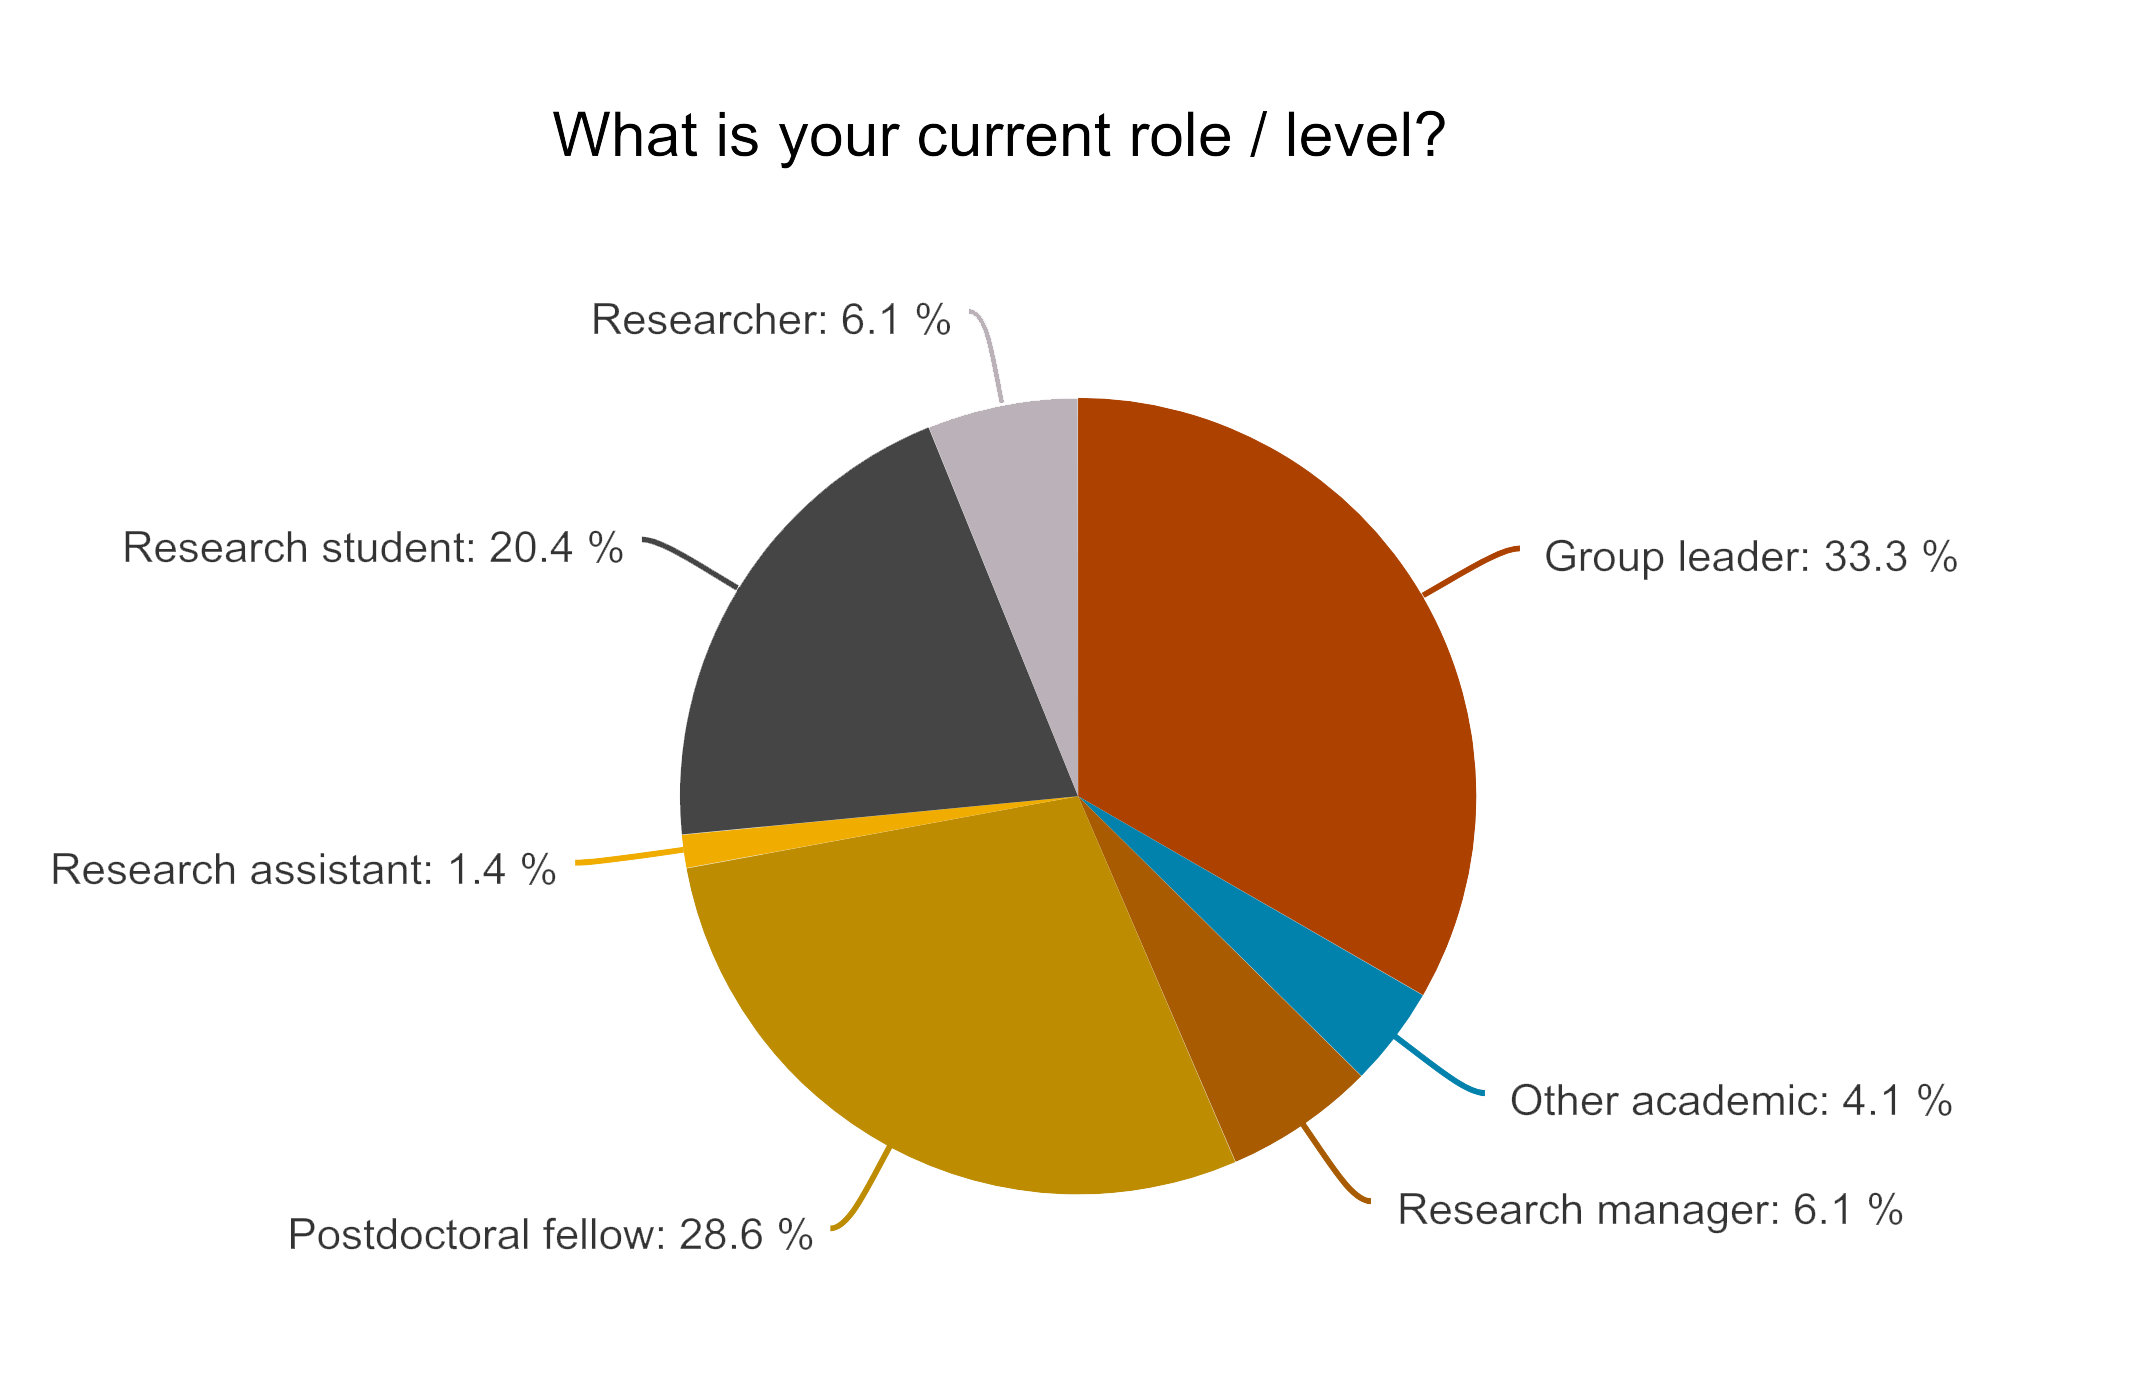 pie chart showing the breakdown of current role/level of respondents